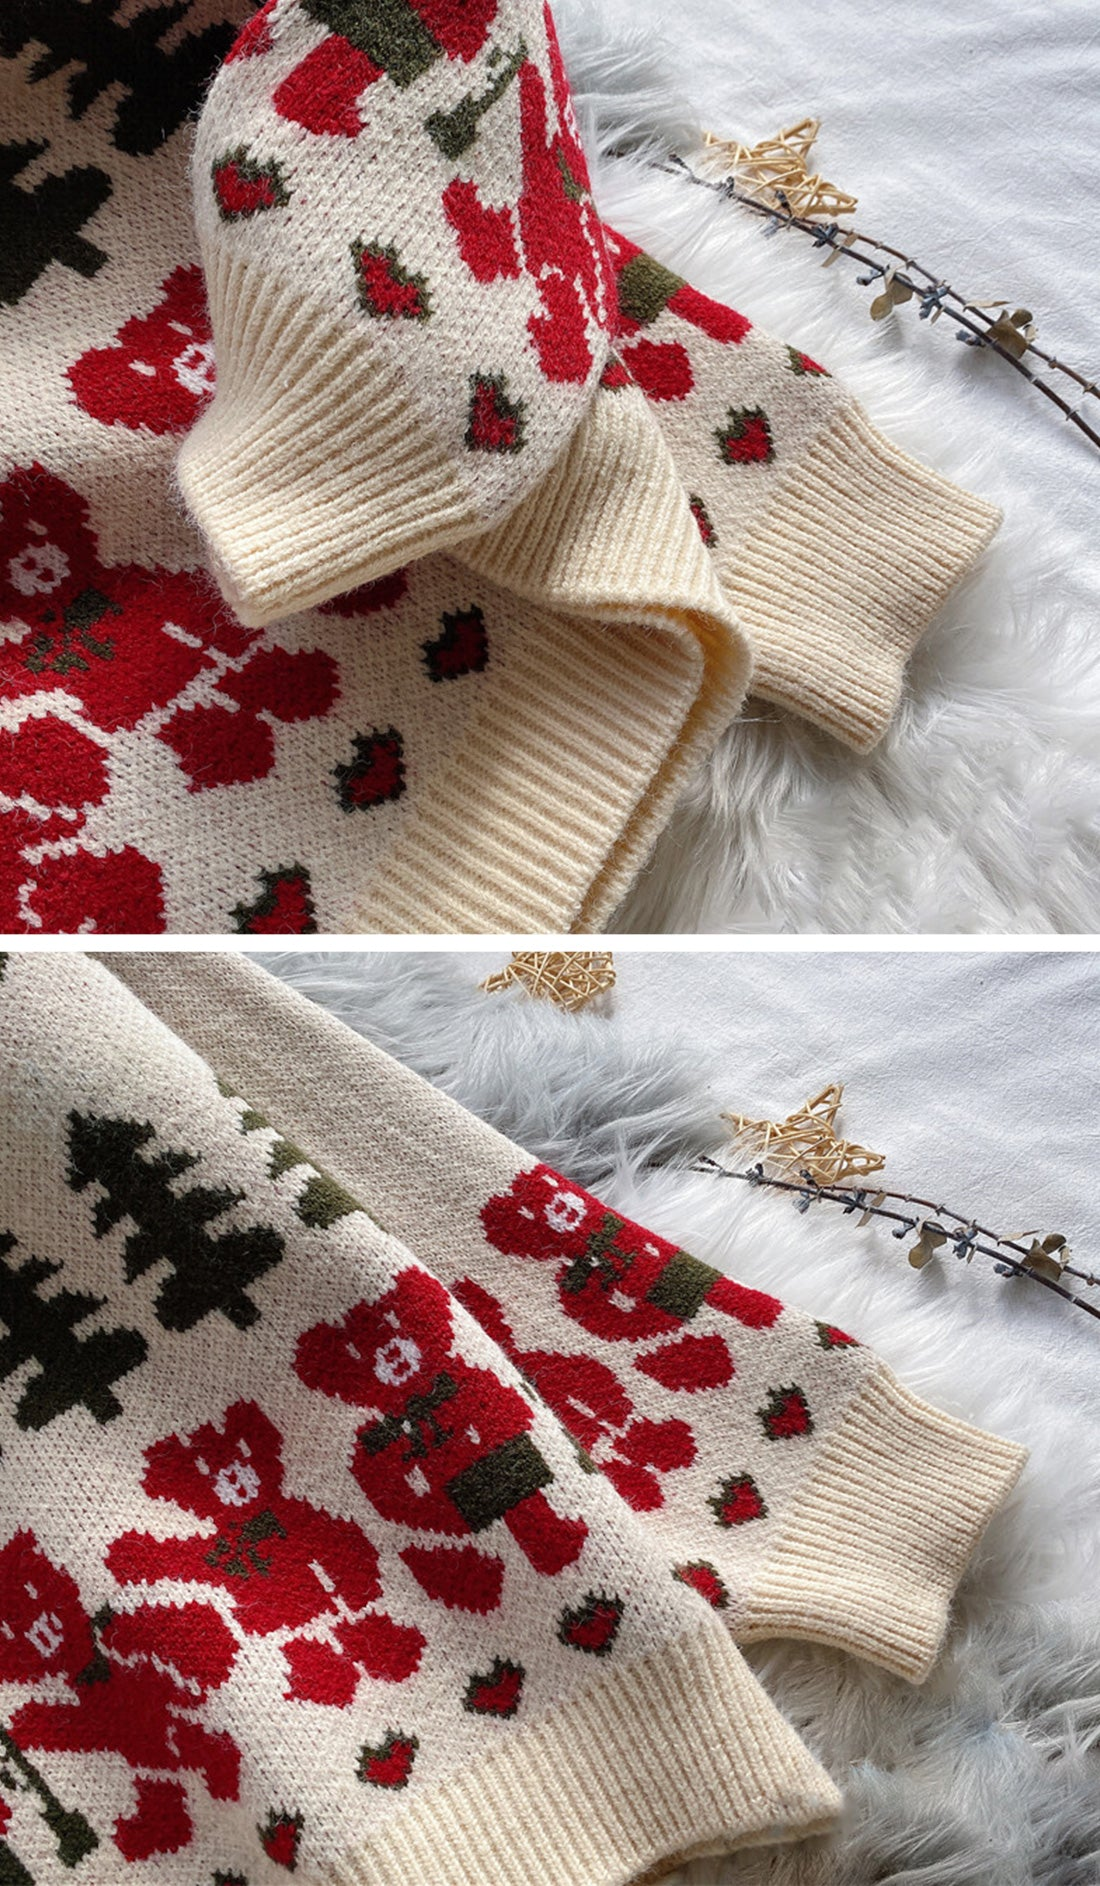 Time For A Beer Christmas Sweater Details 3